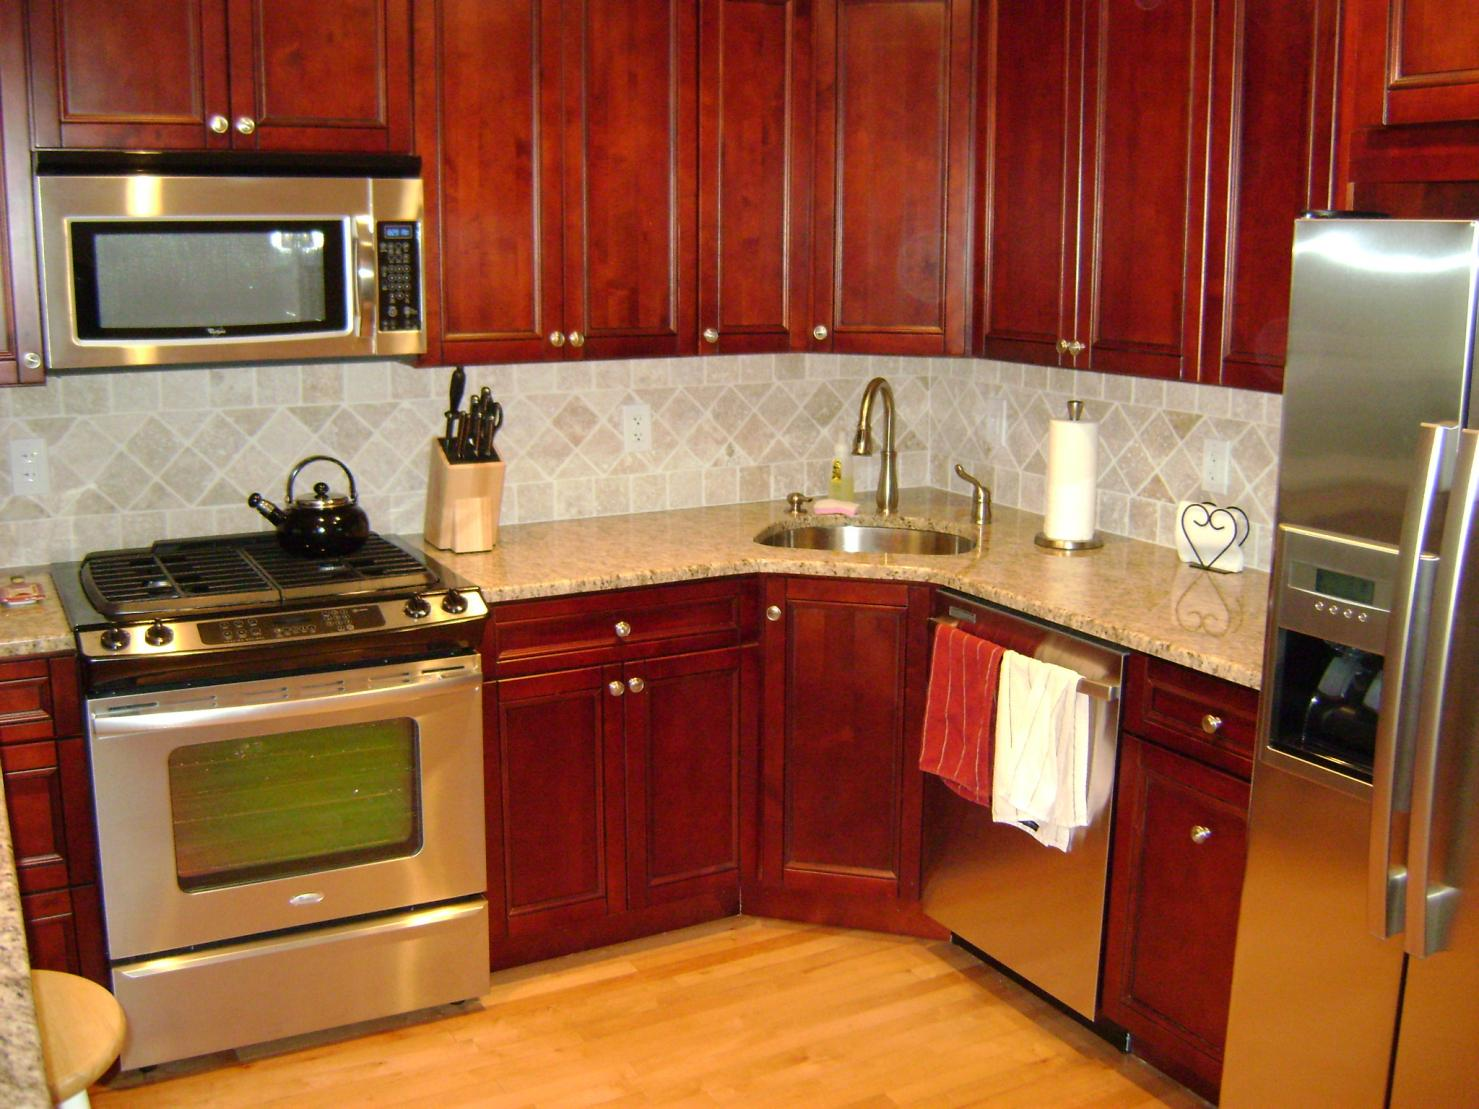 Condo remodel remodeling picture post contractor talk for Tiny kitchen remodel